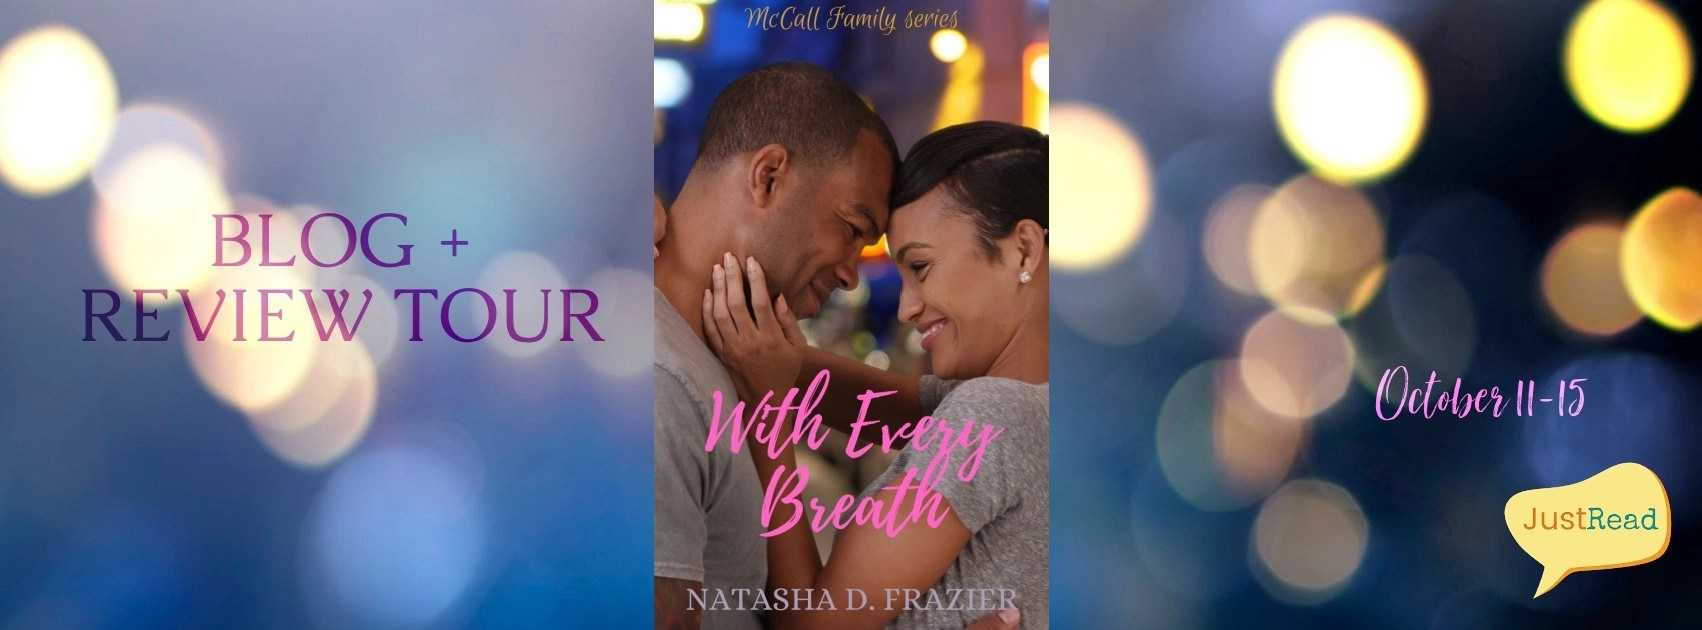 Welcome to the With Every Breath Blog + Review Tour & Giveaway!